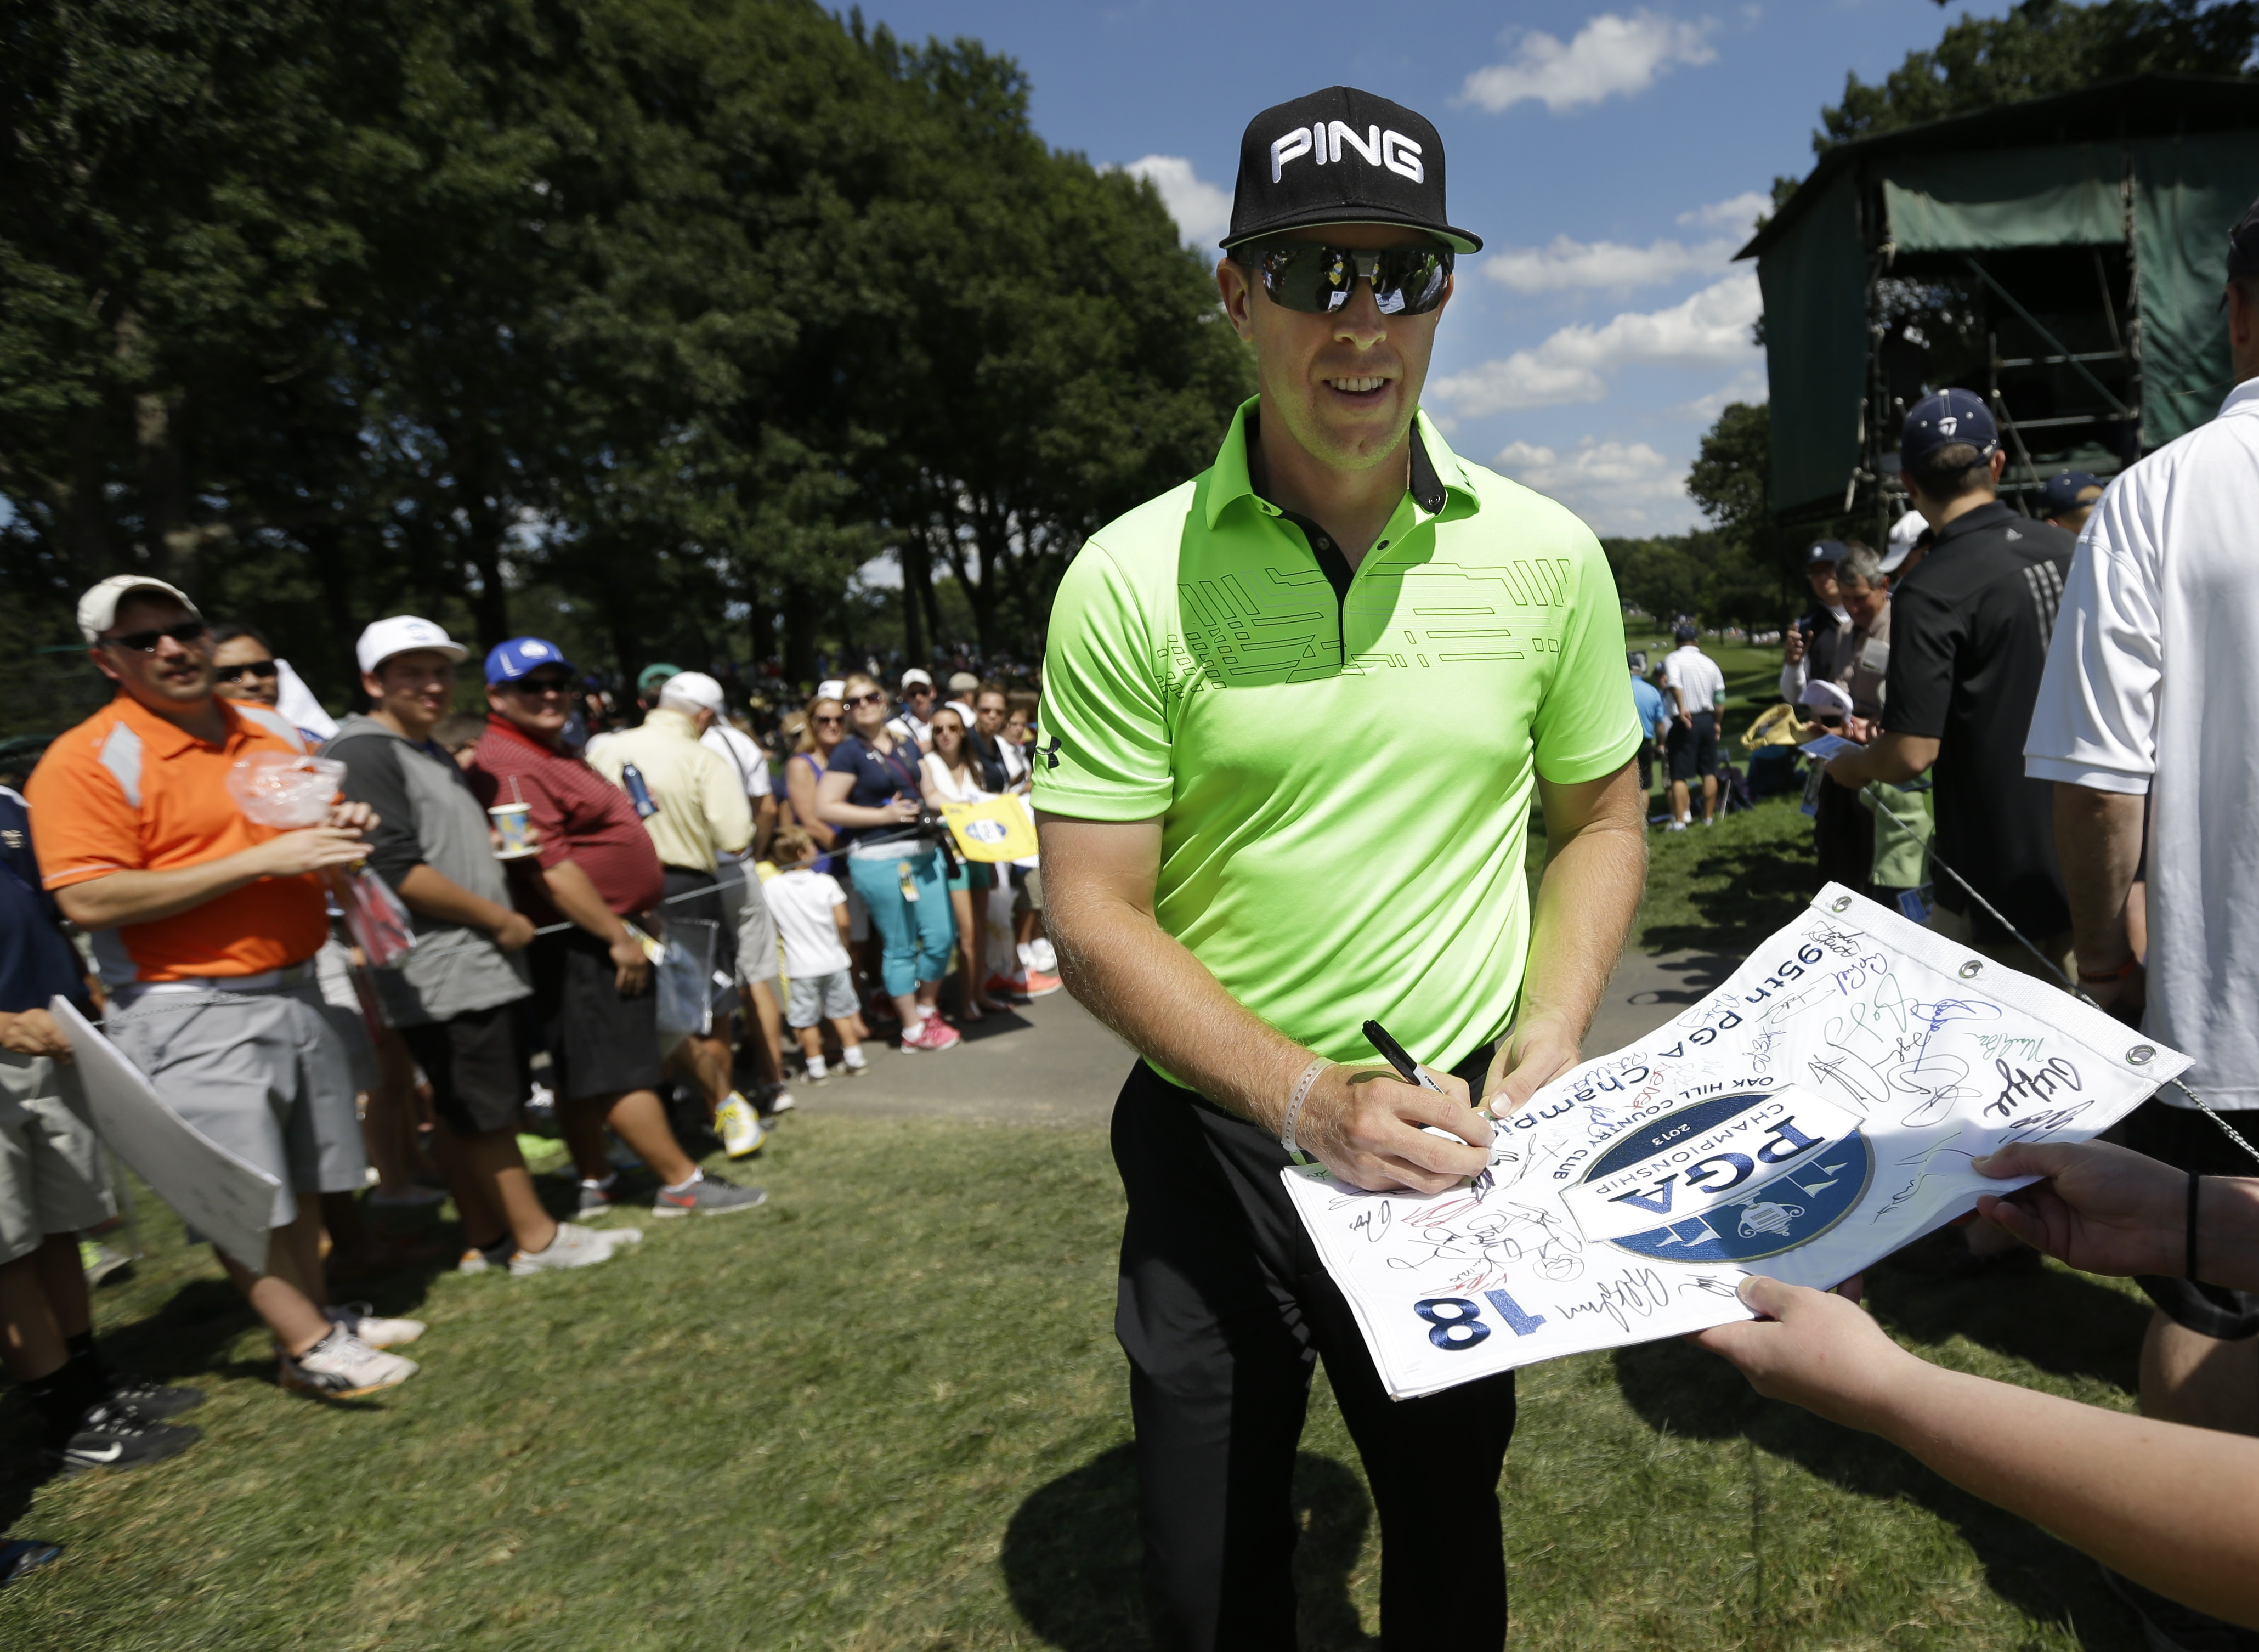 Hunter Mahan signs autographs on the way to the 10th tee during a practice round for the PGA Championship golf tournament at Oak Hill Country Club, Tuesday, Aug. 6, 2013, in Pittsford, N.Y. (AP Photo/Patrick Semansky)